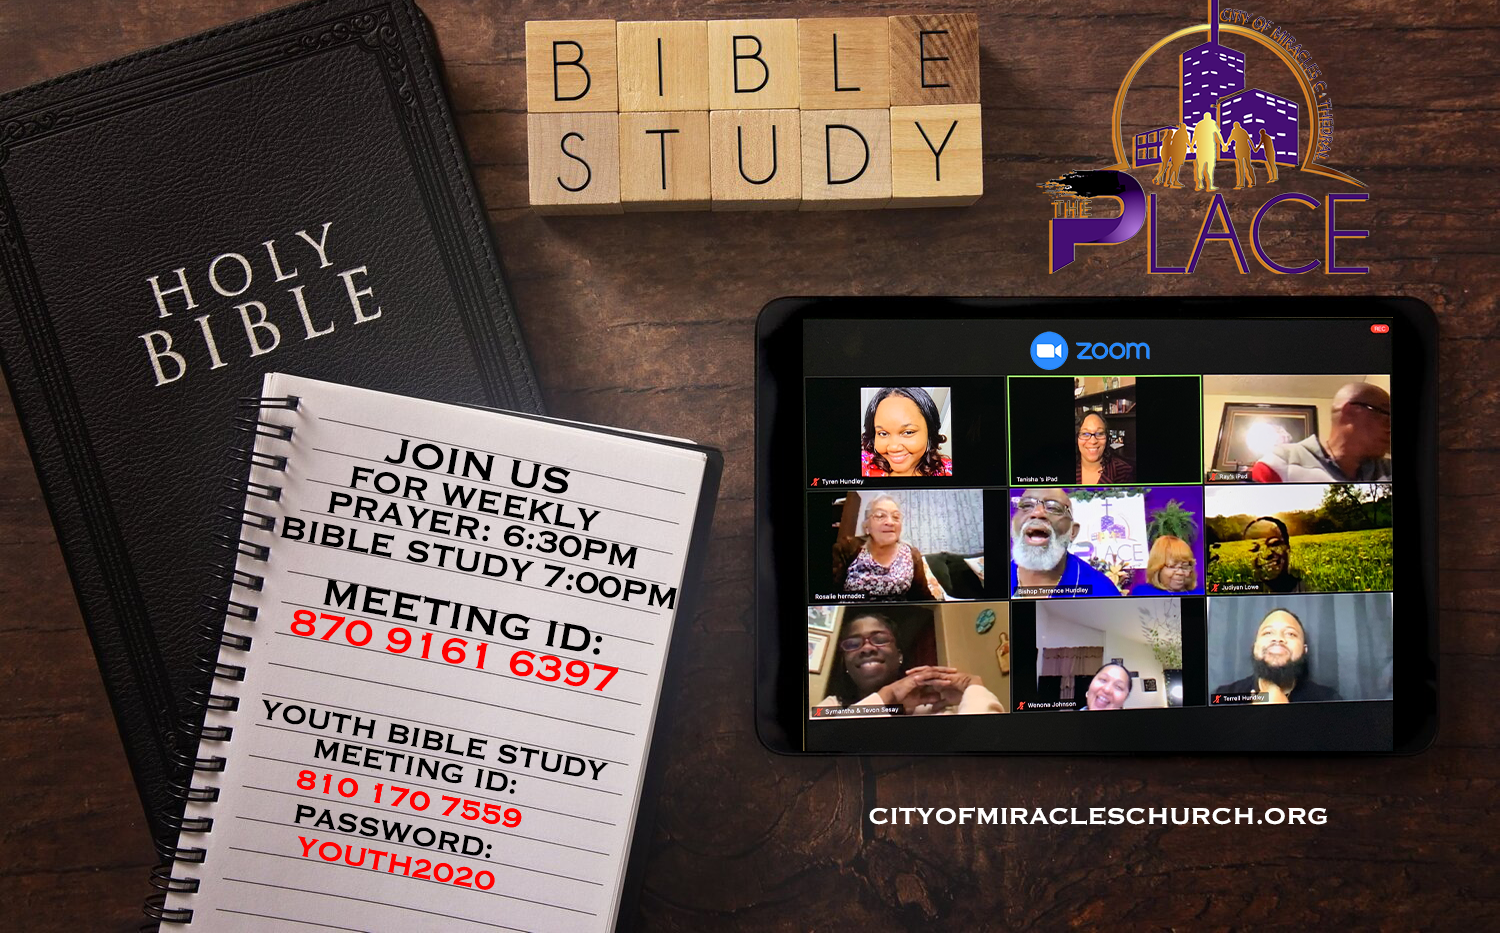 Join us for Weekly Bible Study @ 7PM